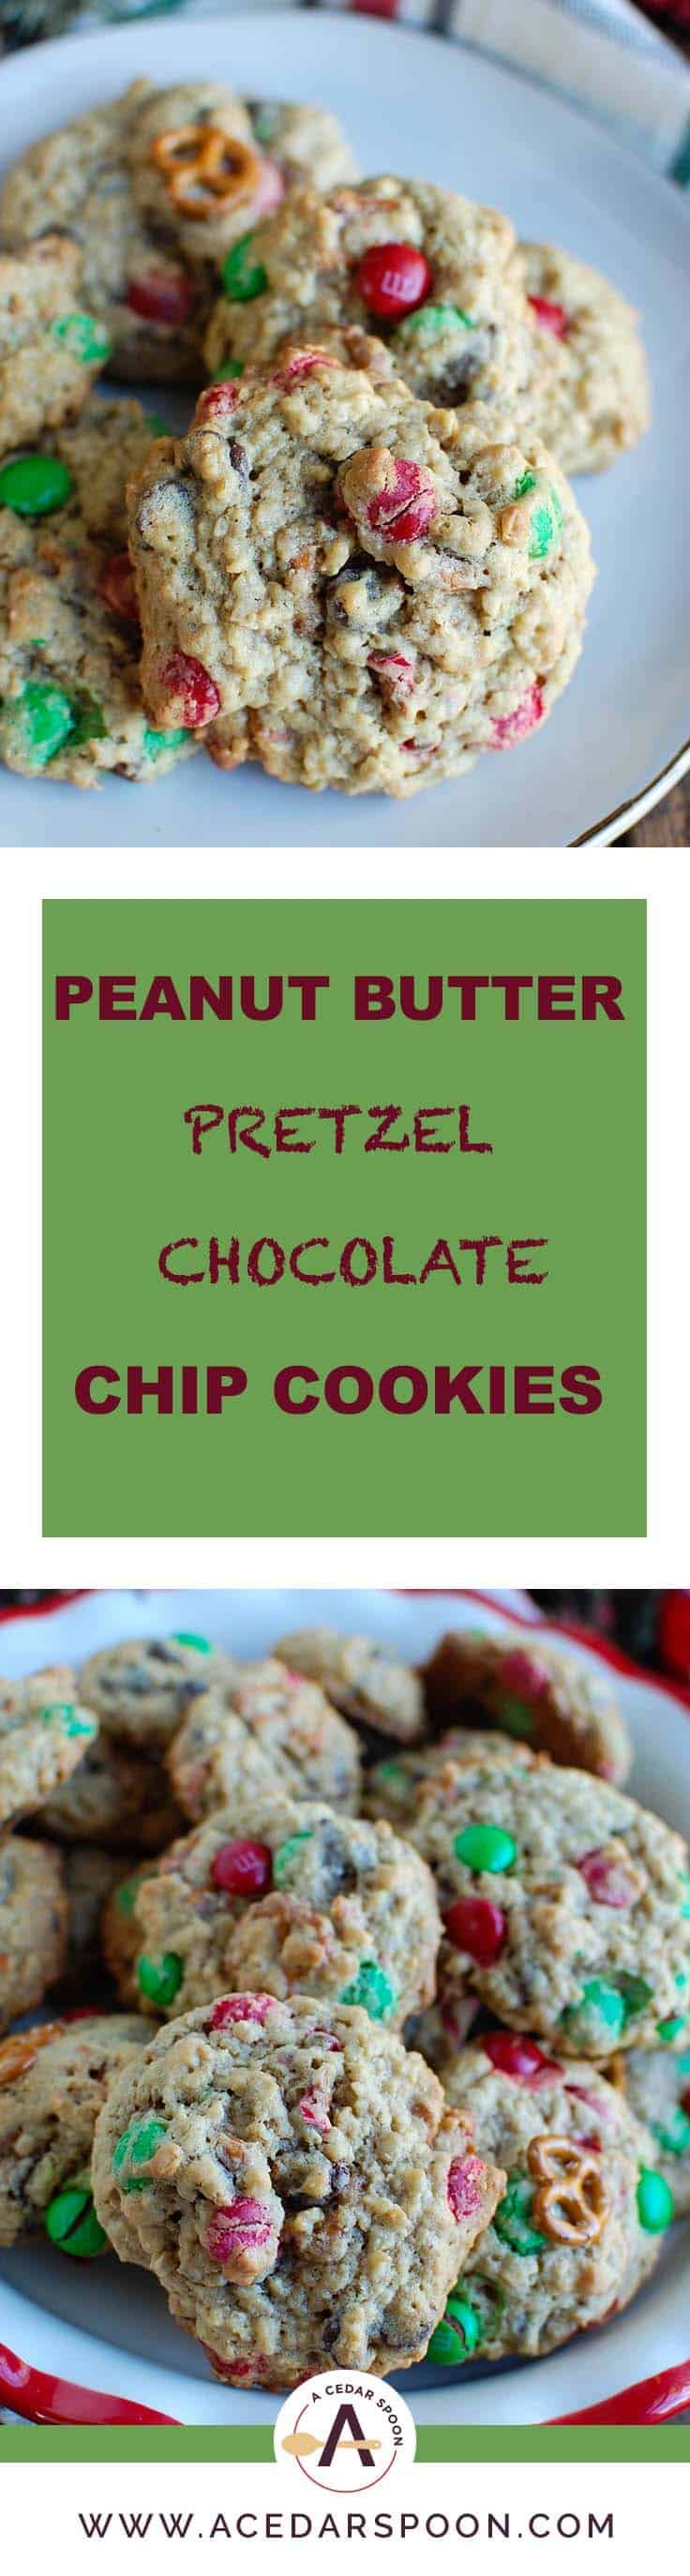 Peanut Butter Pretzel Chocolate Chip Cookies are made with creamy peanut butter and oats and loaded with pretzels, M & Ms and chocolate chips.These are a festive holiday cookie or perfect for any time of the year.